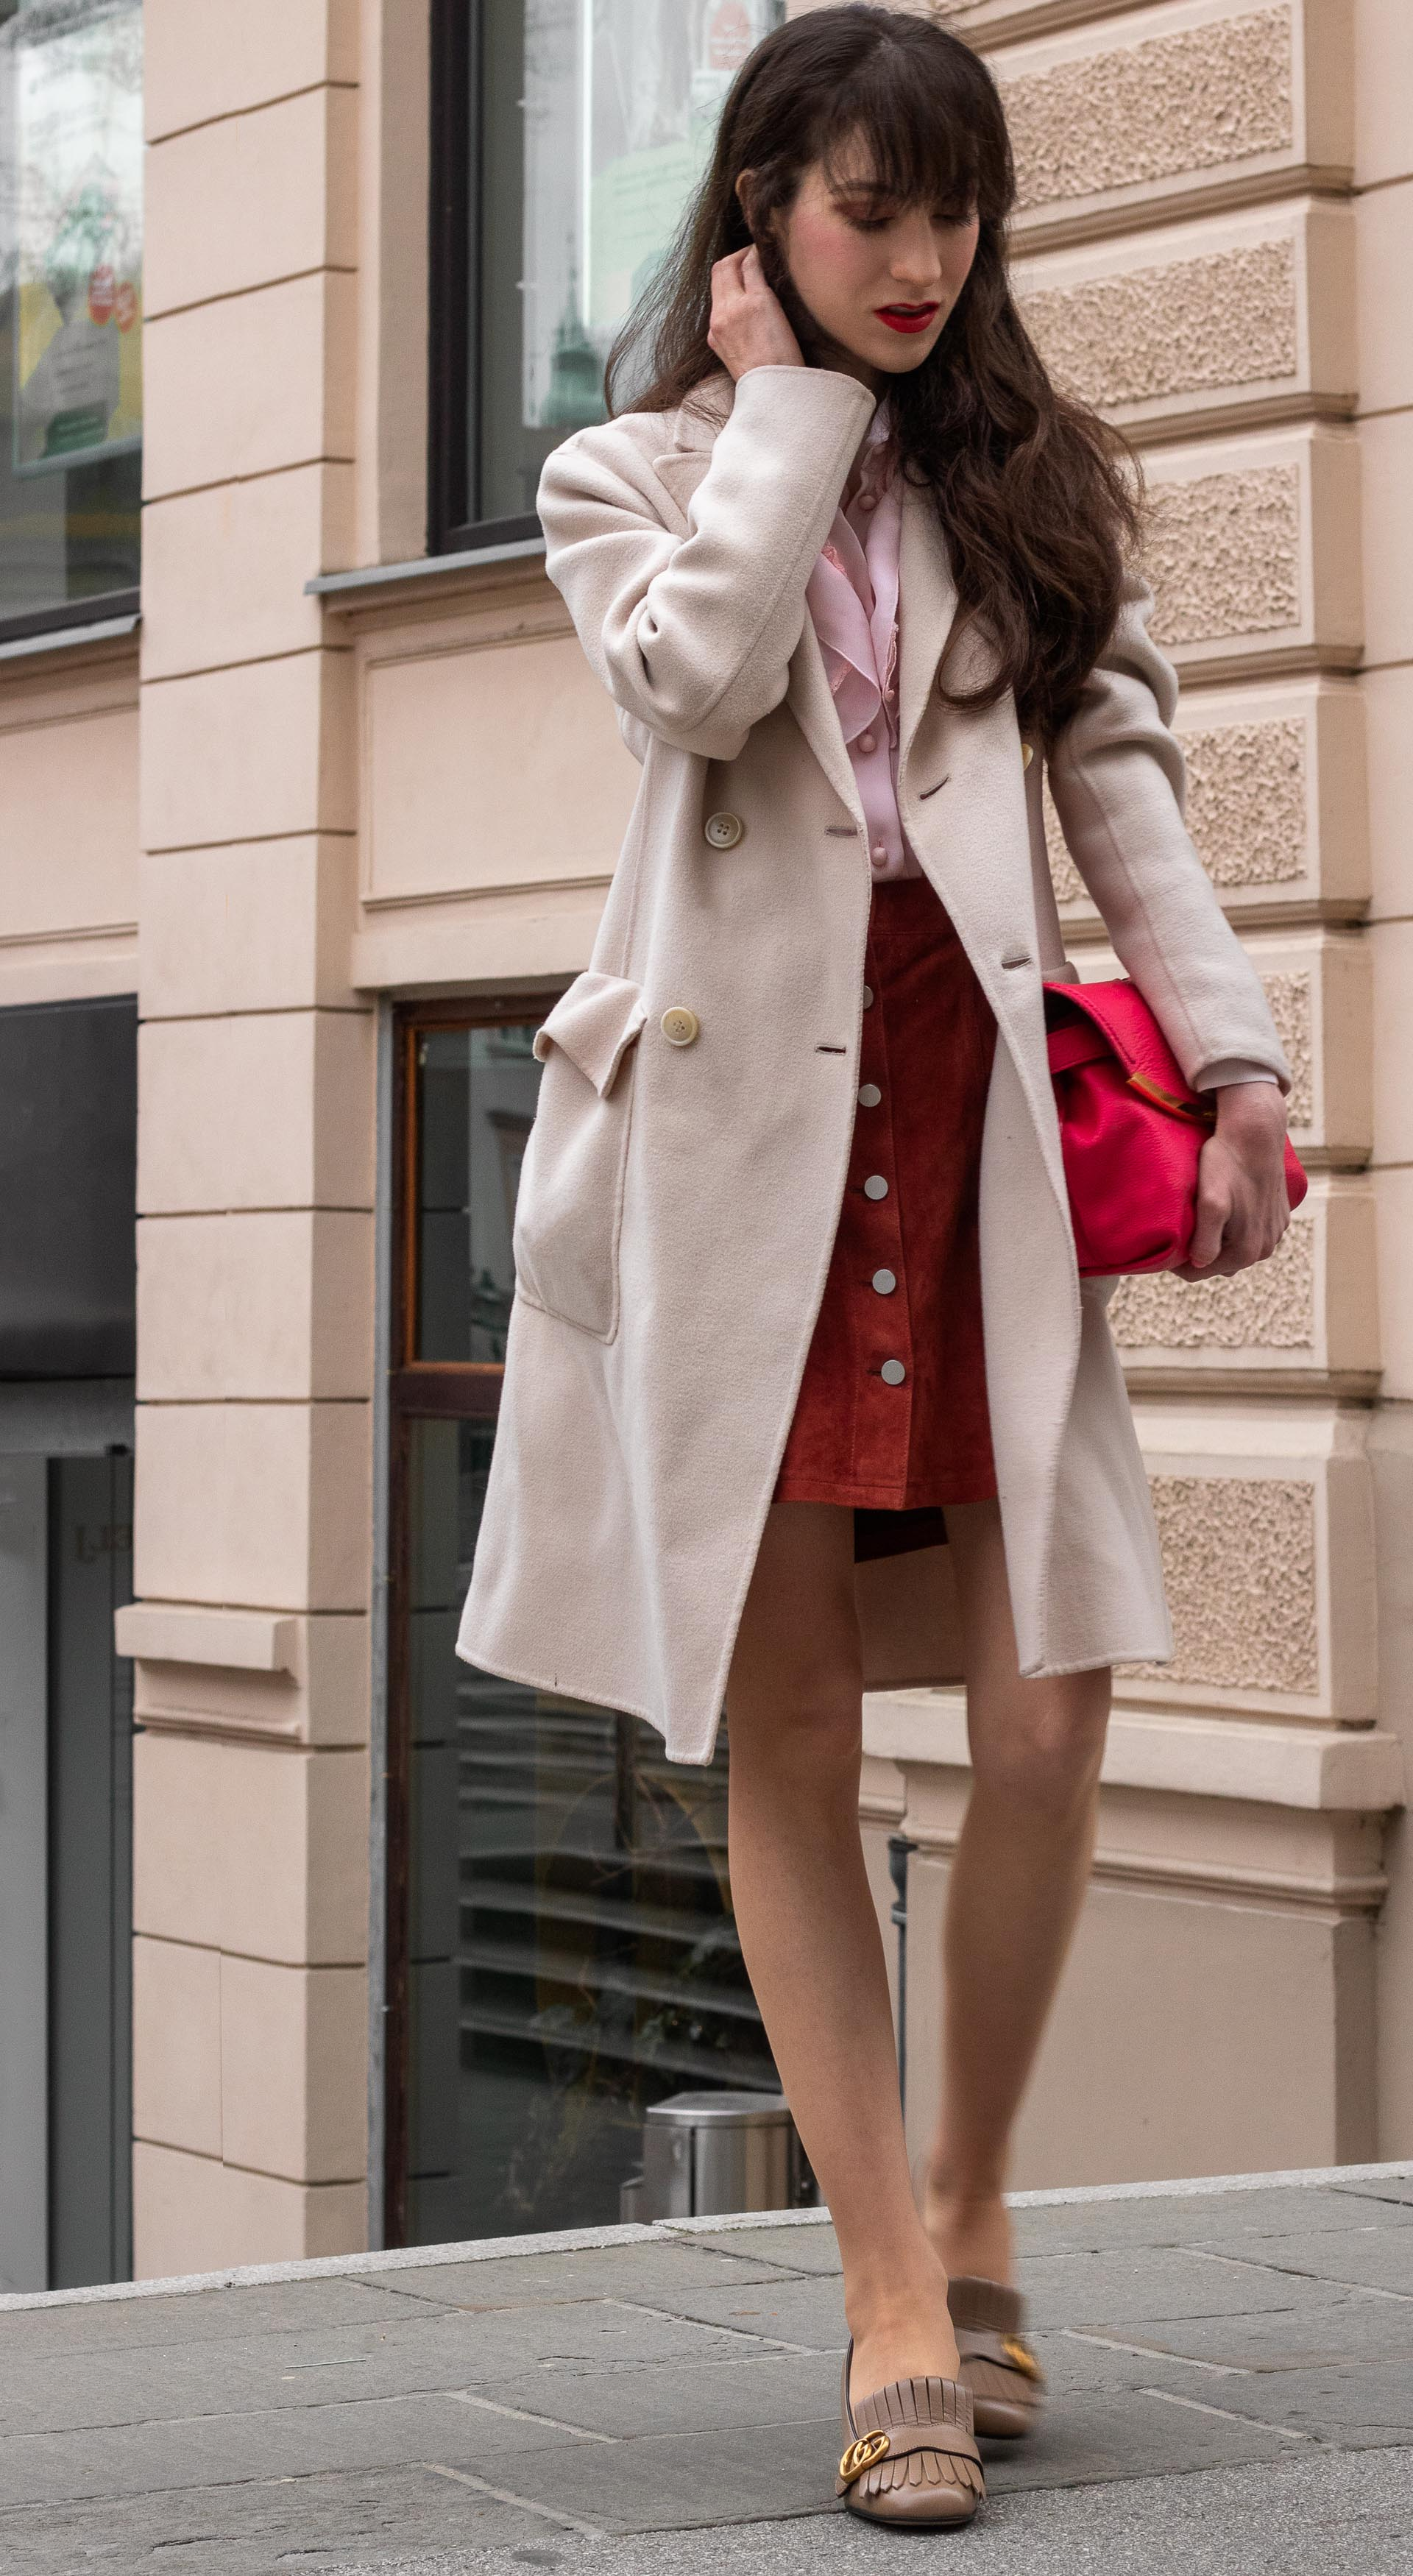 Fashion blogger Veronika Lipar of Brunette from Wall Street dressed in fancy transitional outfit Weekend Max Mara double breasted coat Red Valentino pink blouse brown suede front button short skirt pink pouch bag Gucci heeled loafers